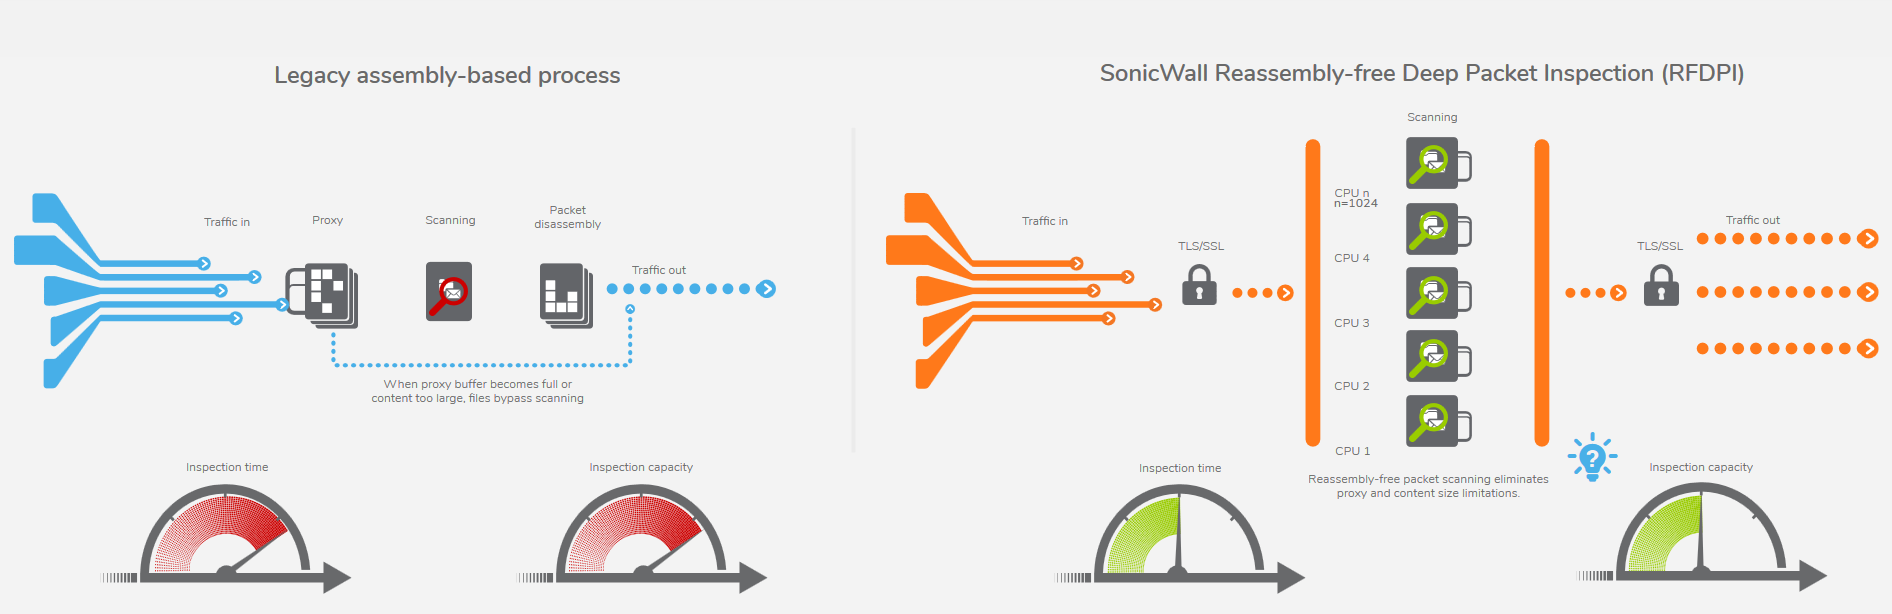 SonicWall Reassembly-free Deep Packet Inspection (RFDPI)